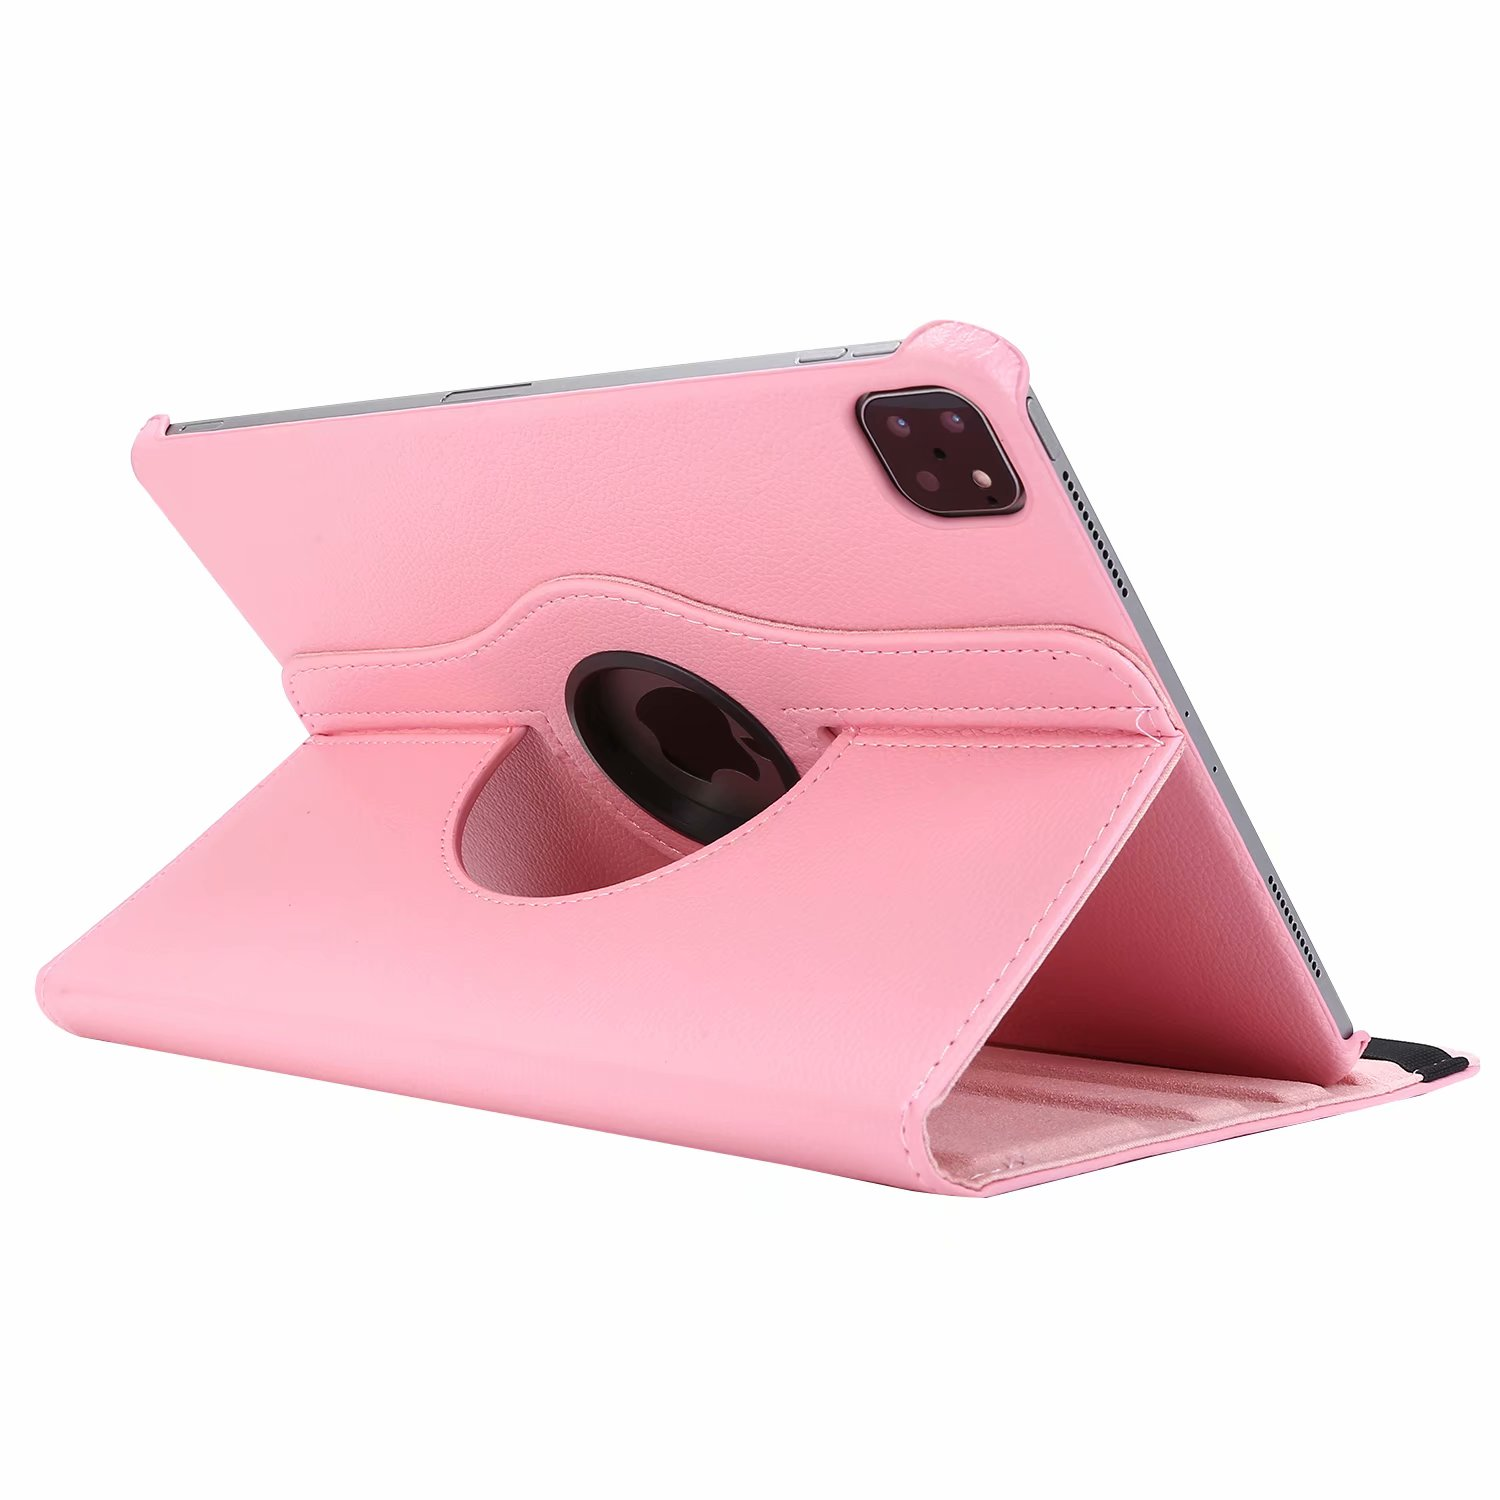 Pink Pink Case for iPad Pro 11 Cover 2021 2020 2018 A2228 A2068 A2230 A2013 A1934 A1980 360